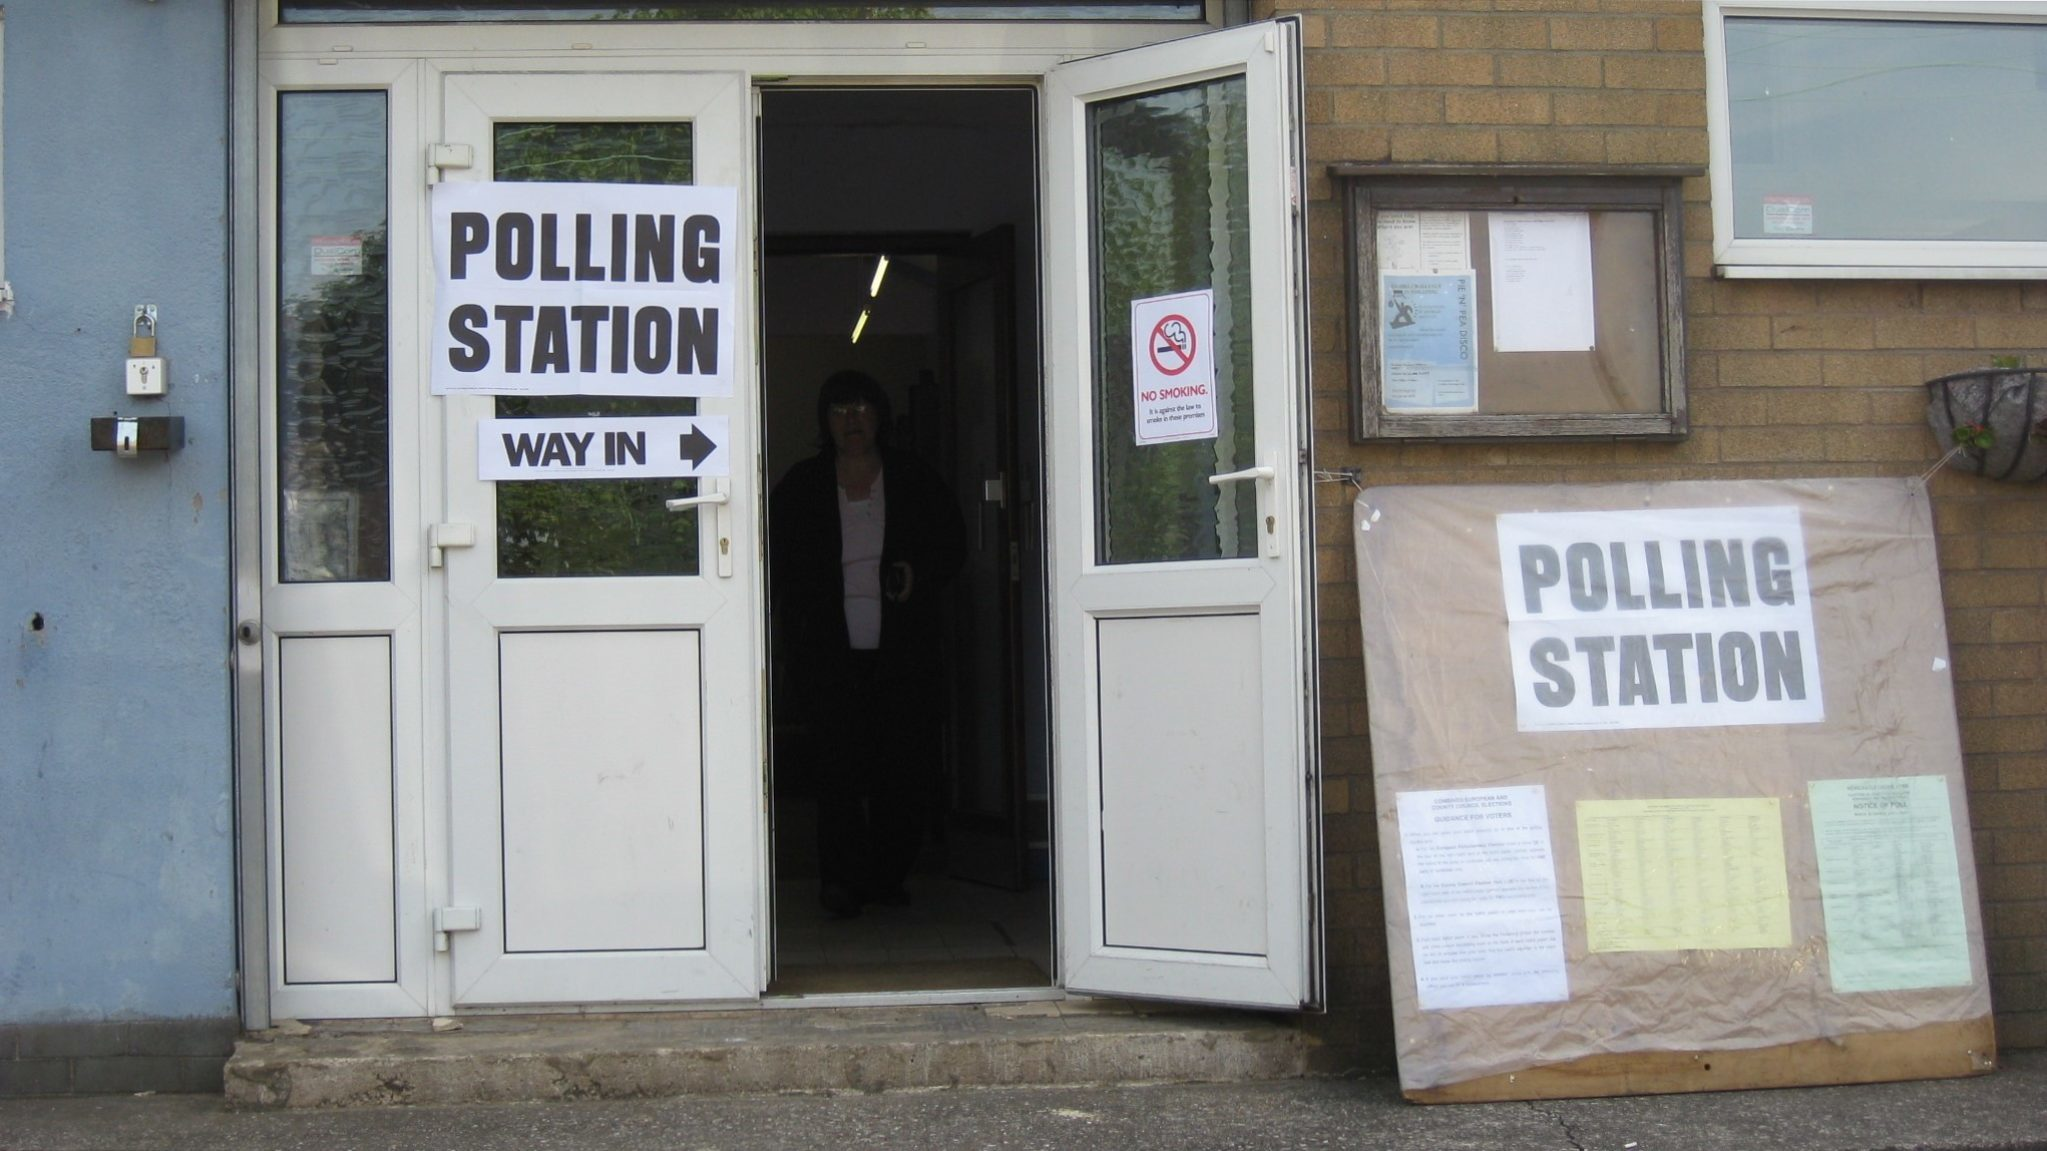 Polling station signs